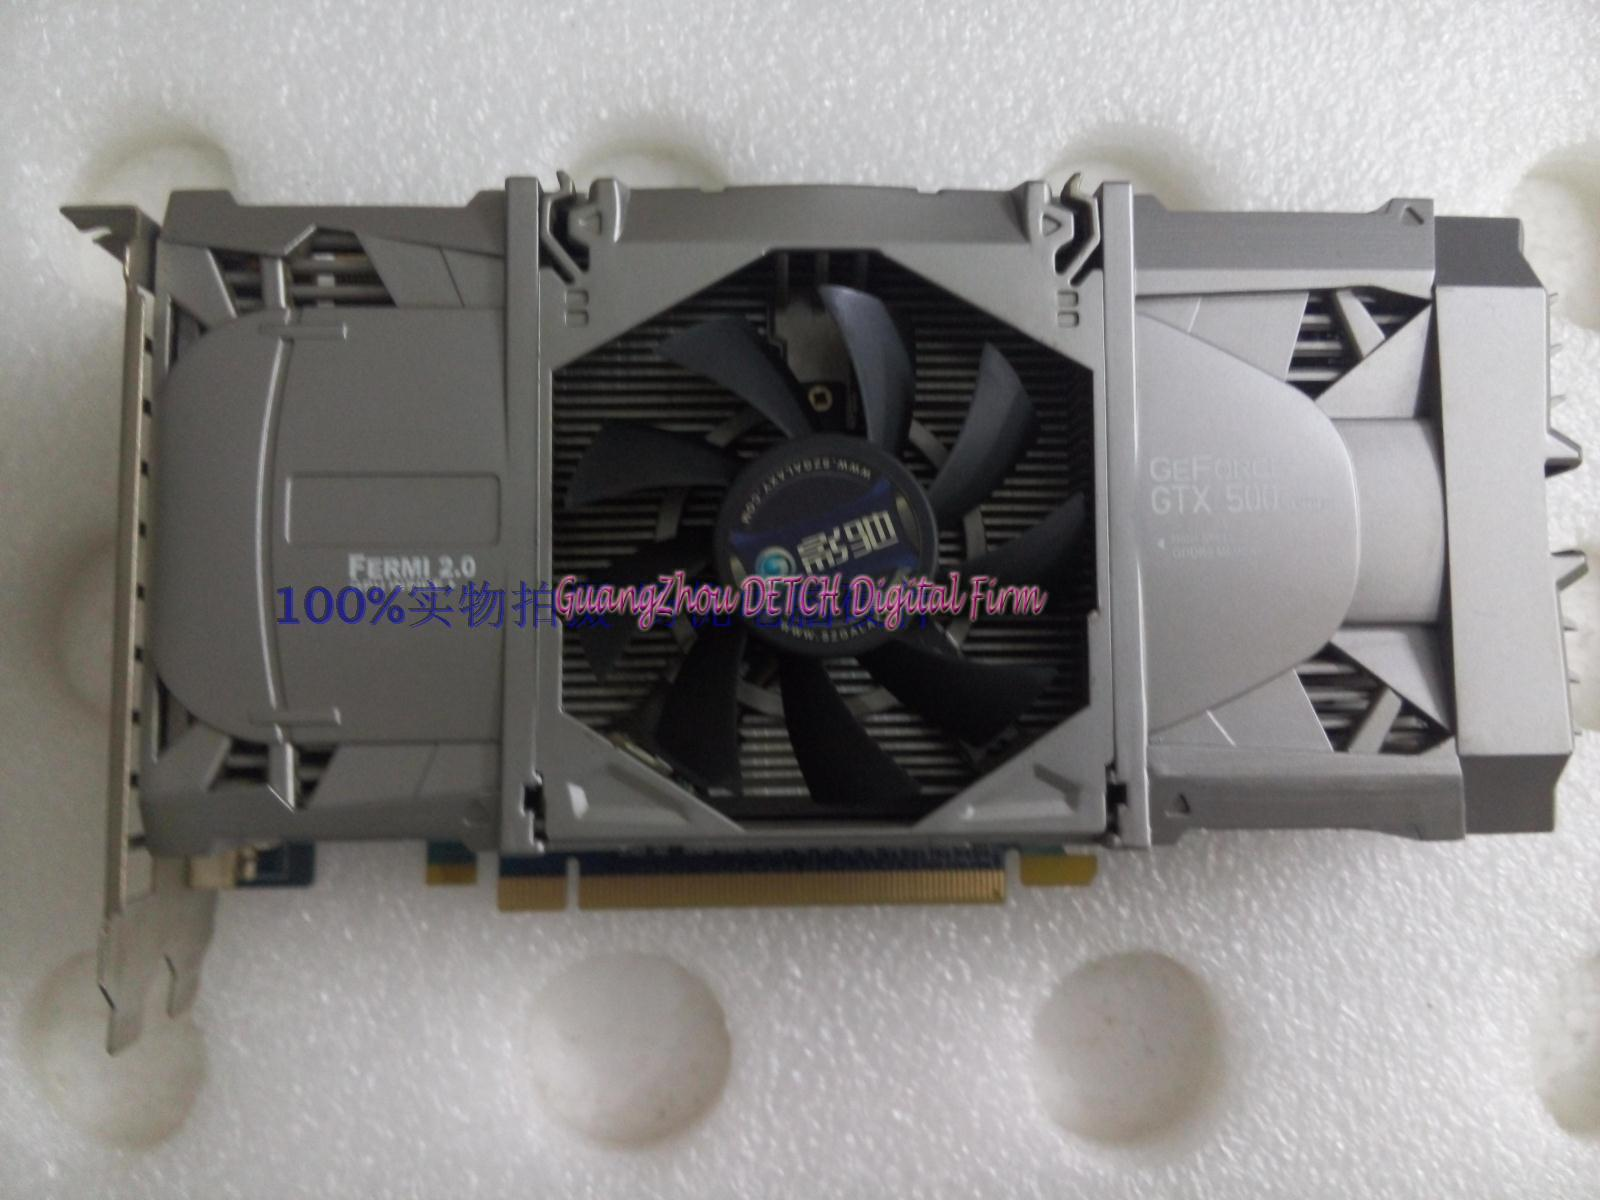 GTX560SE 768M graphics tiger version used games